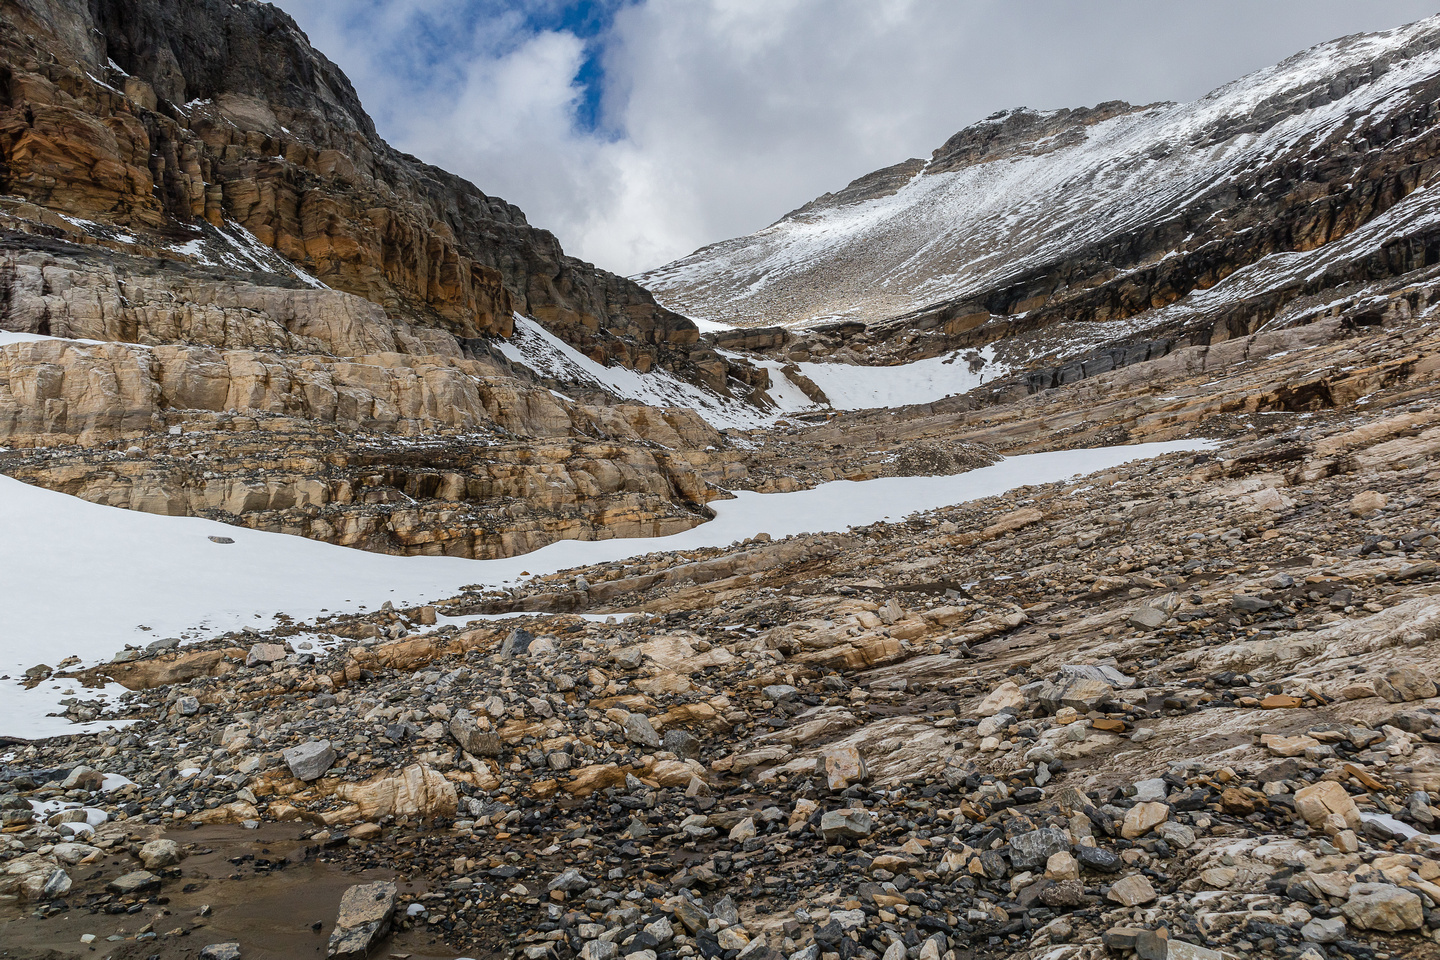 The shallower and easier second glacial bowl has less glacier and cliffs and more scree and snow.